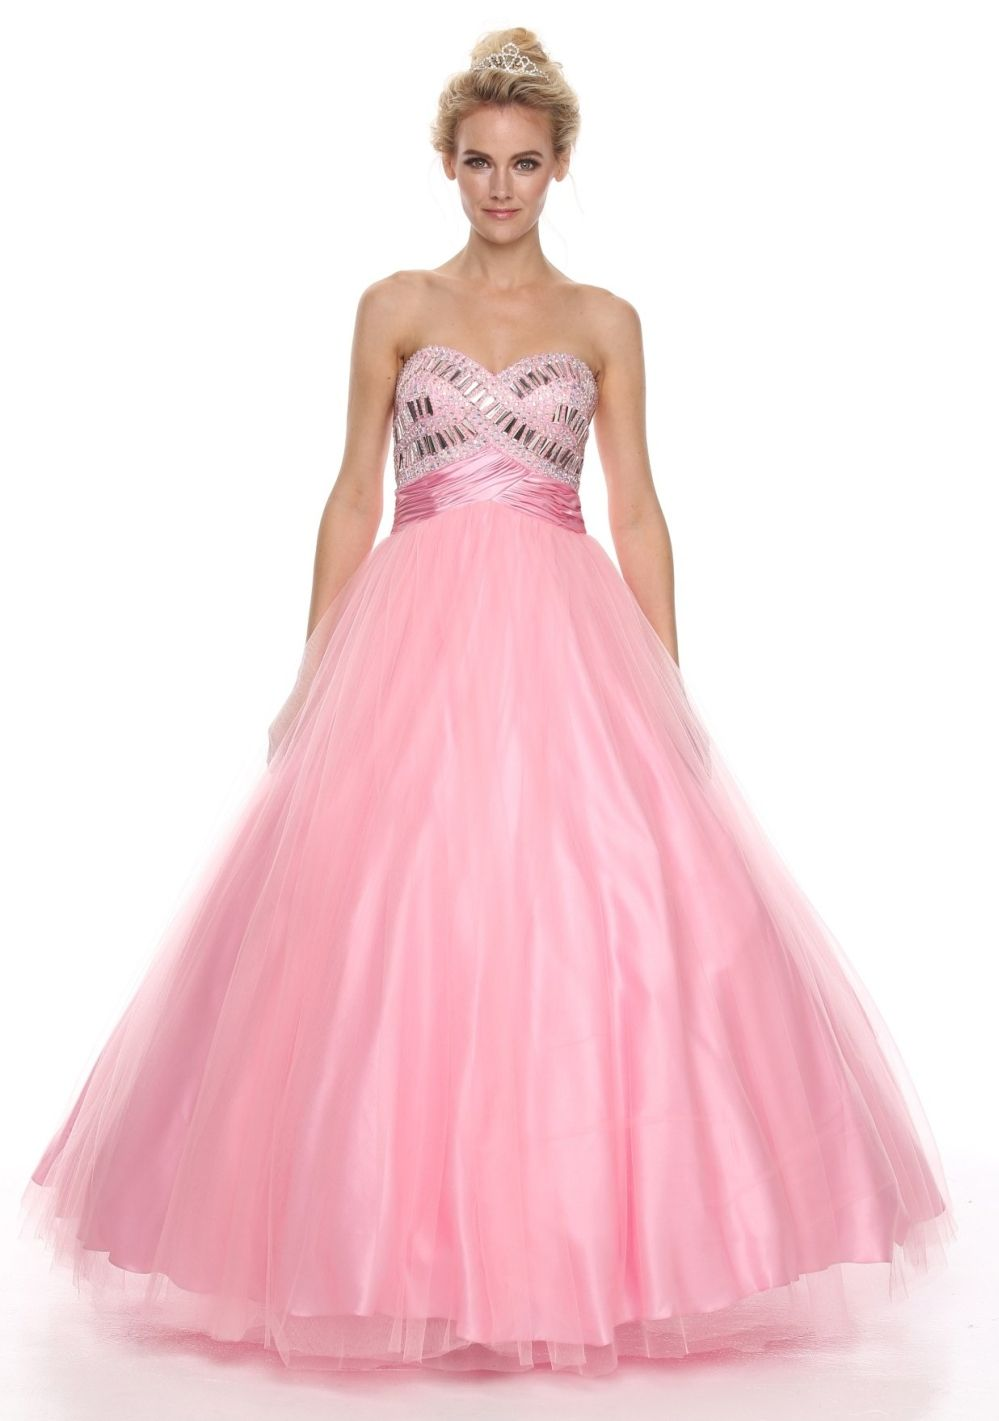 Sweetheart Neck Studded Bodice Light Pink Princess Gown $297.99 ...